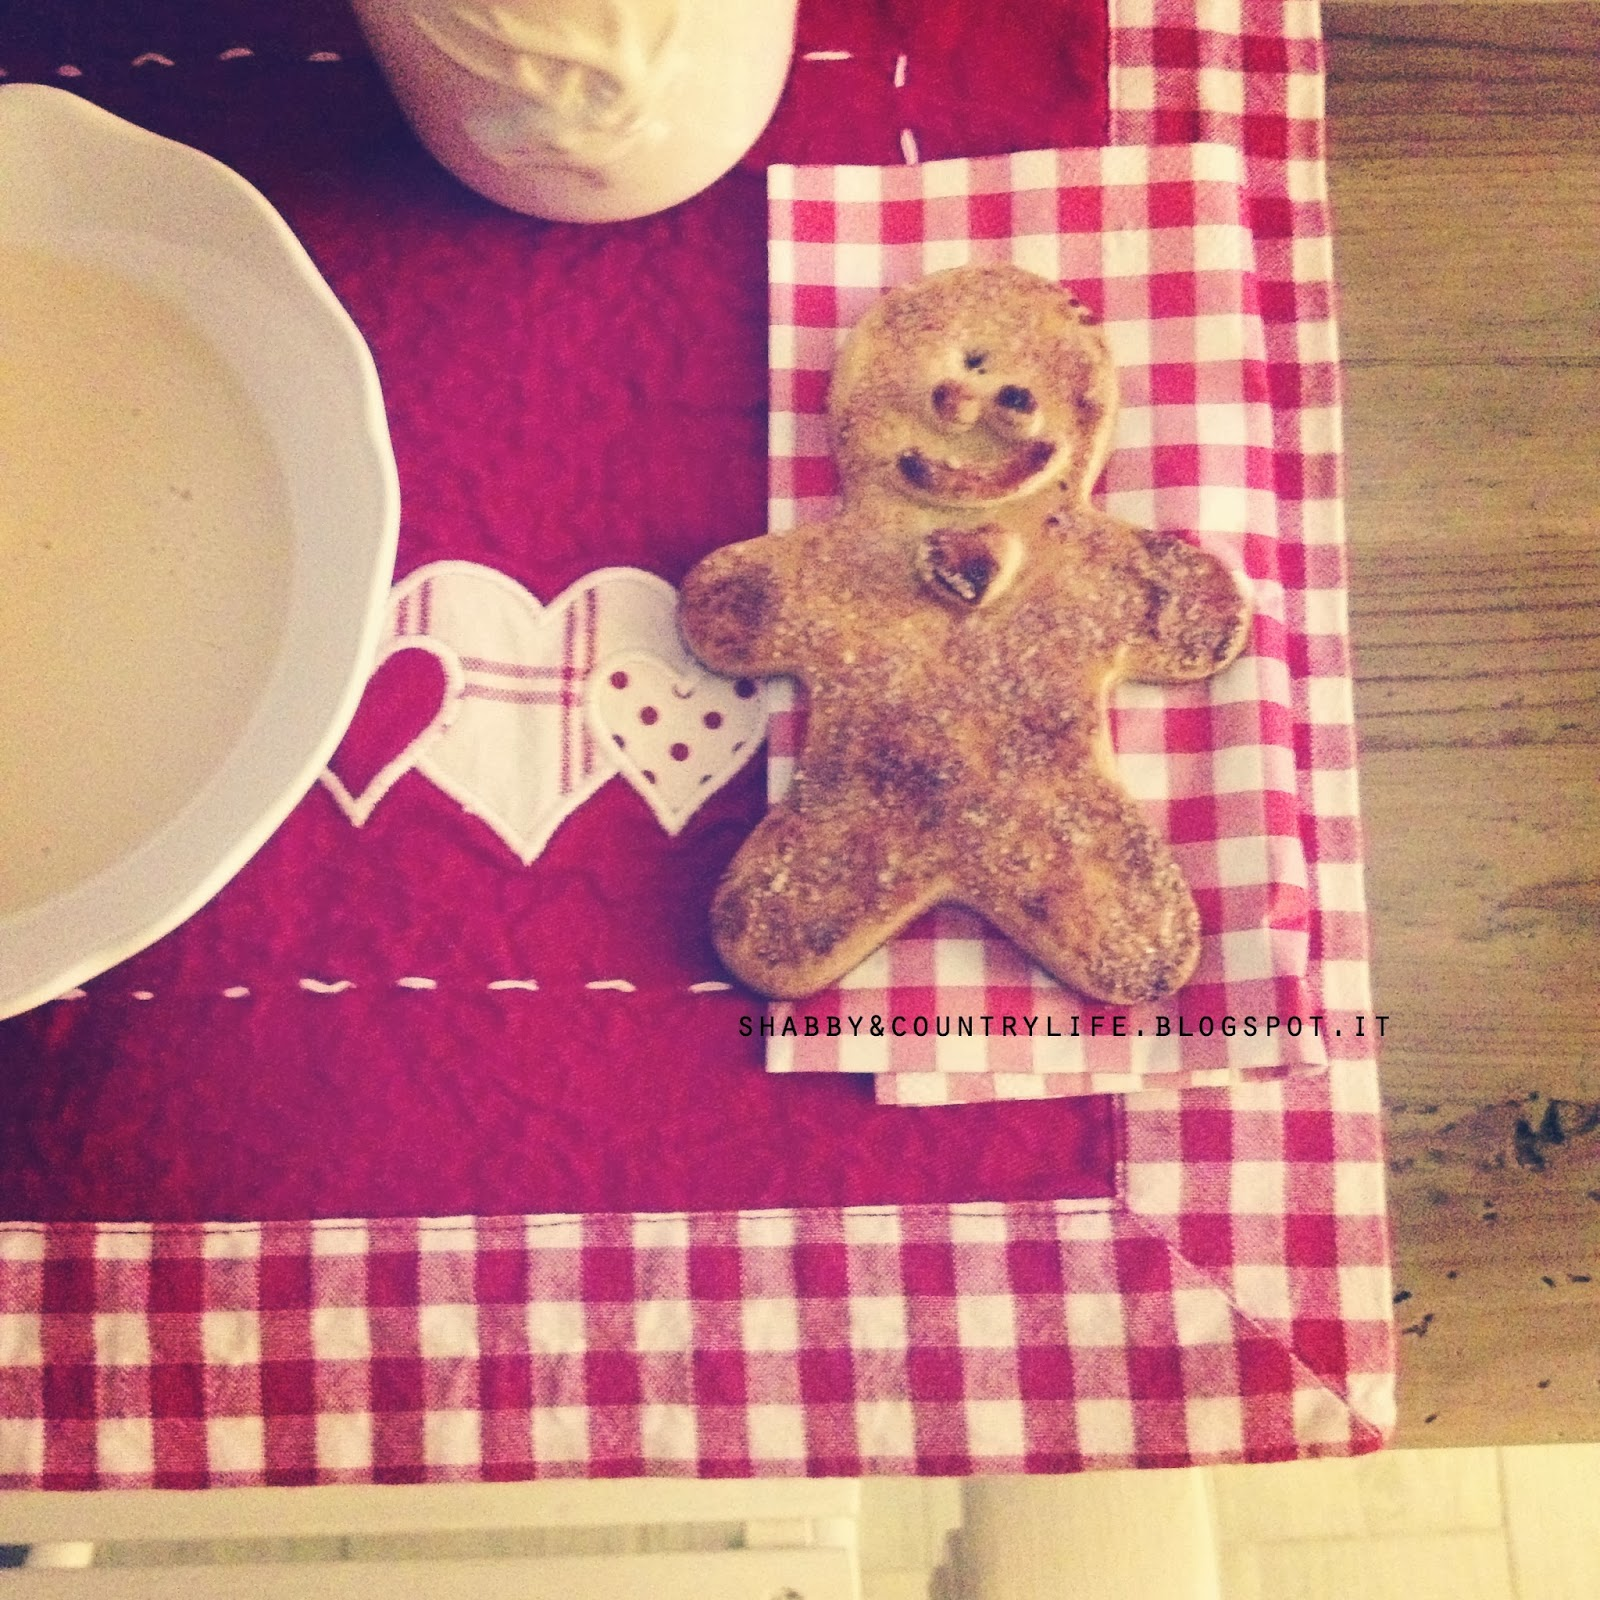 Pasta Frolla dolce per Apple Pie & Biscotti  #raccoltacookies - shabby&countrylife.blogspot.it